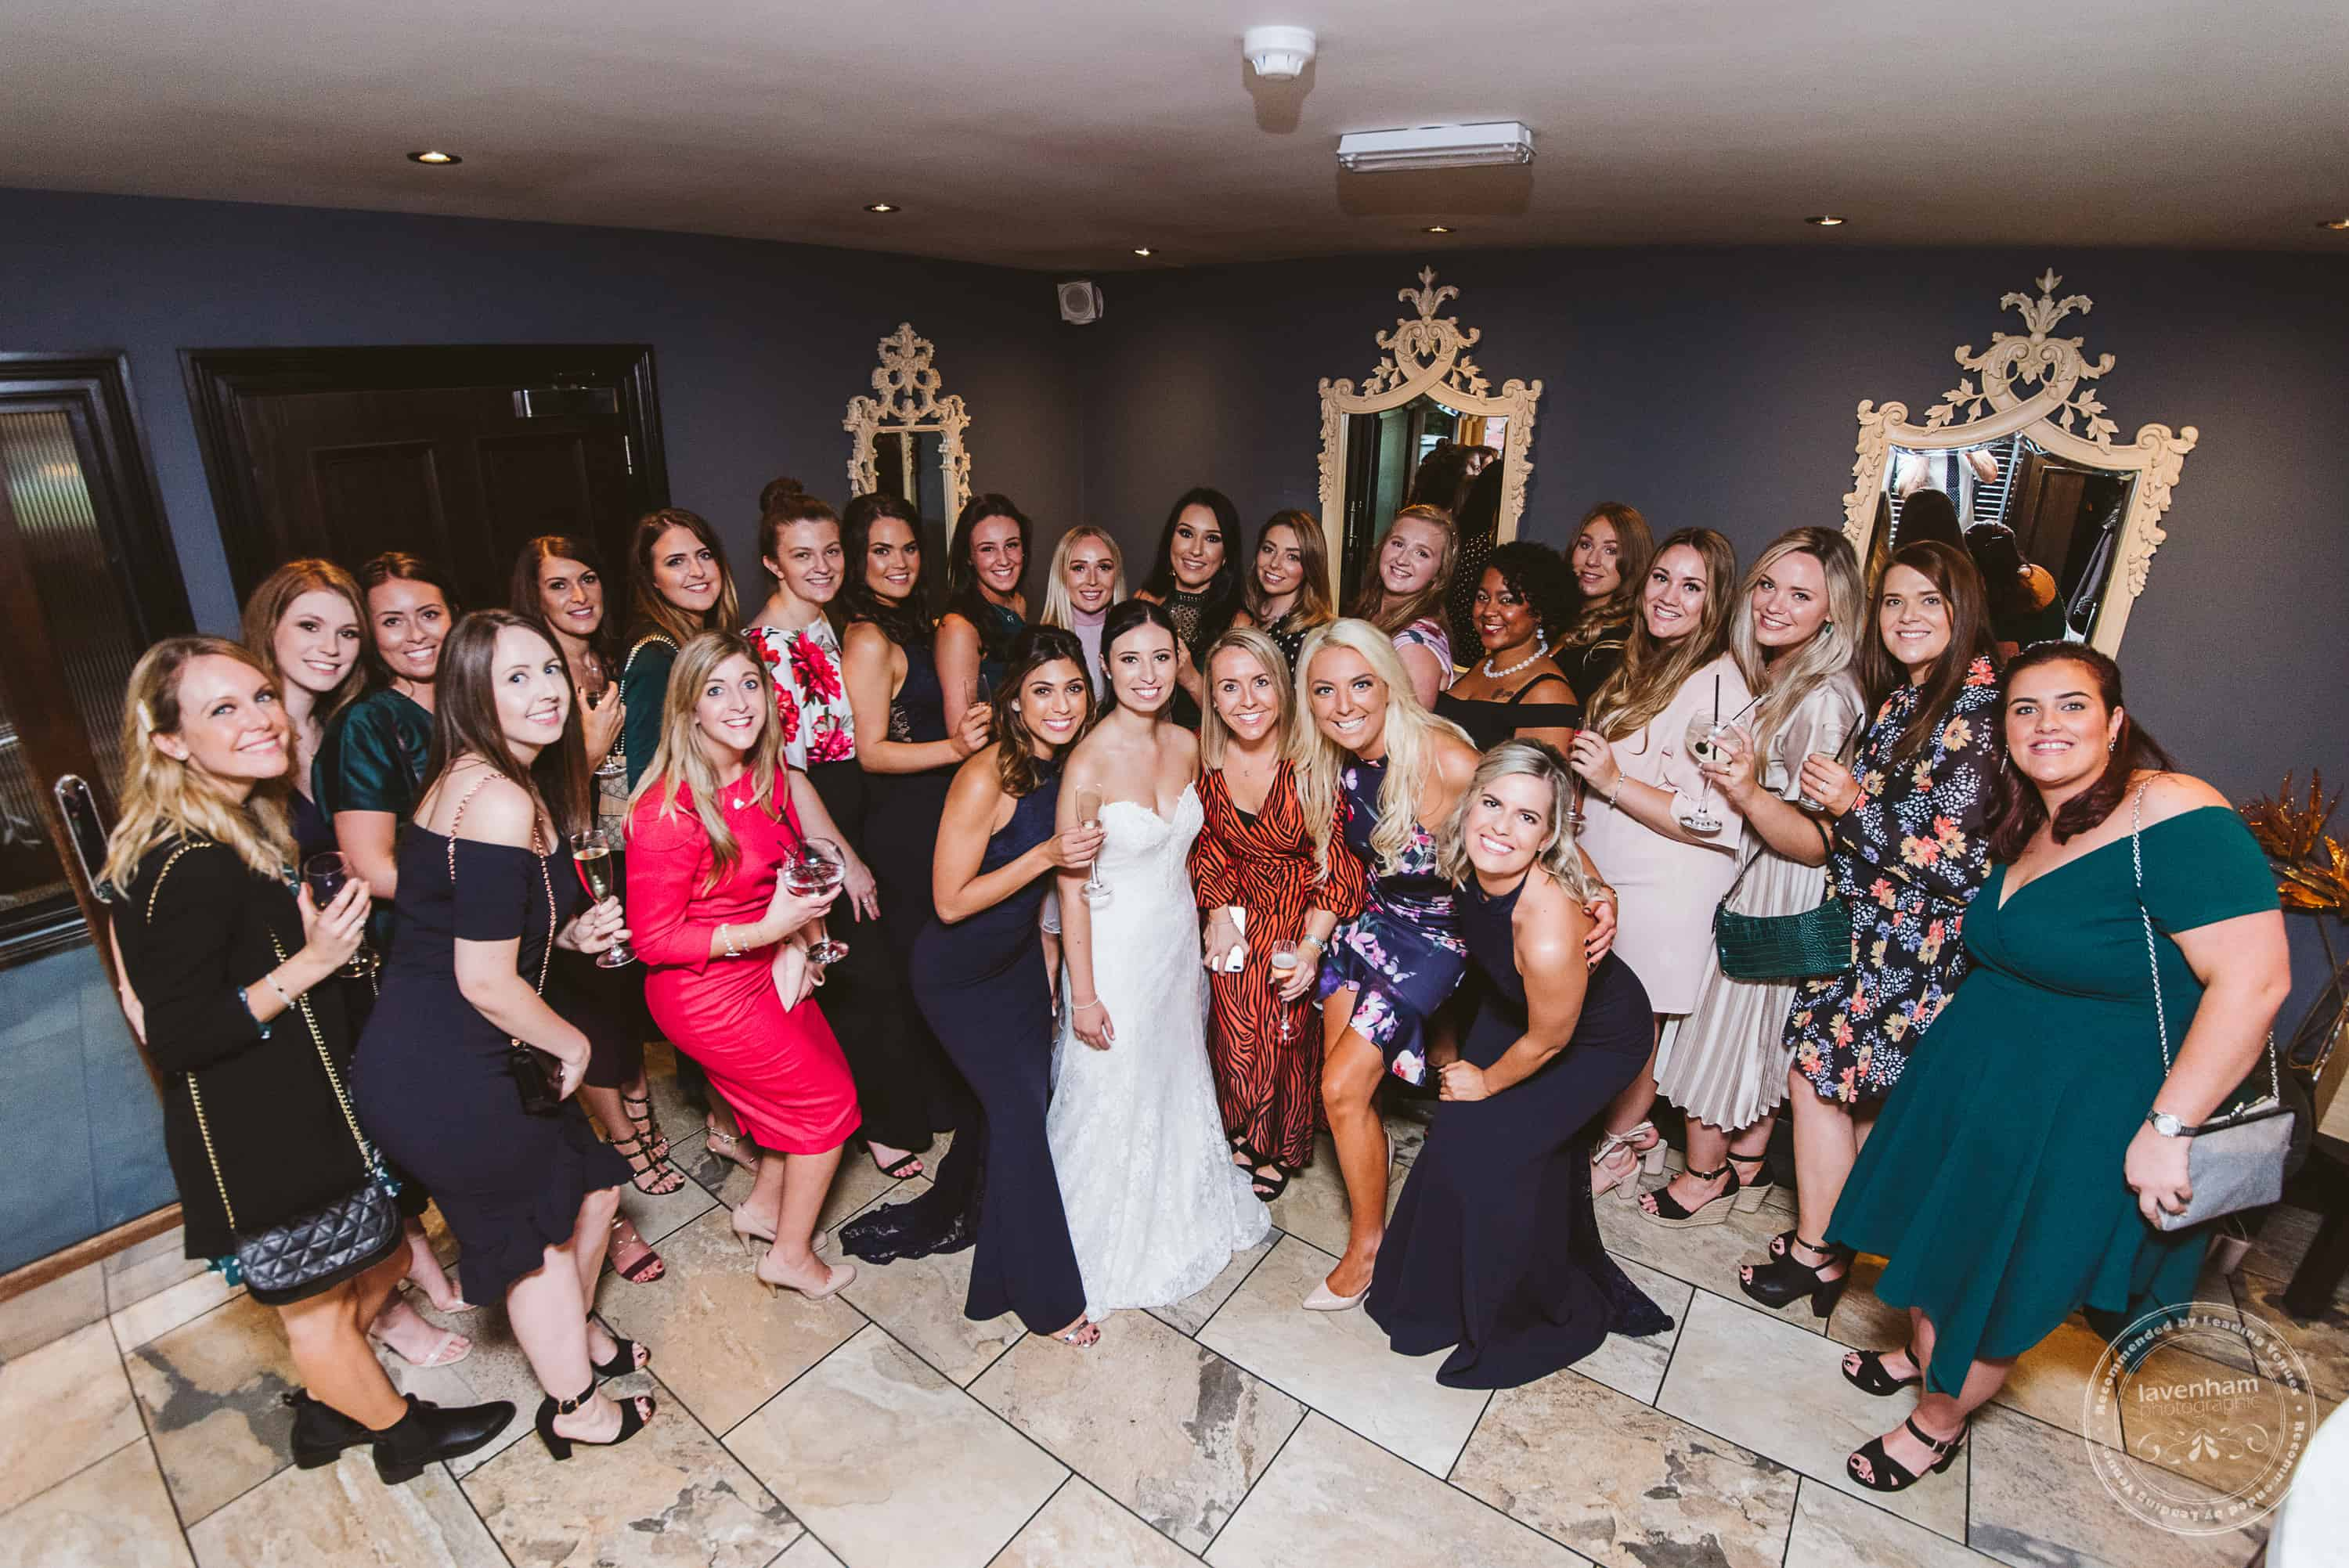 261019 Bull and Willow Room Essex Wedding Photographer 095